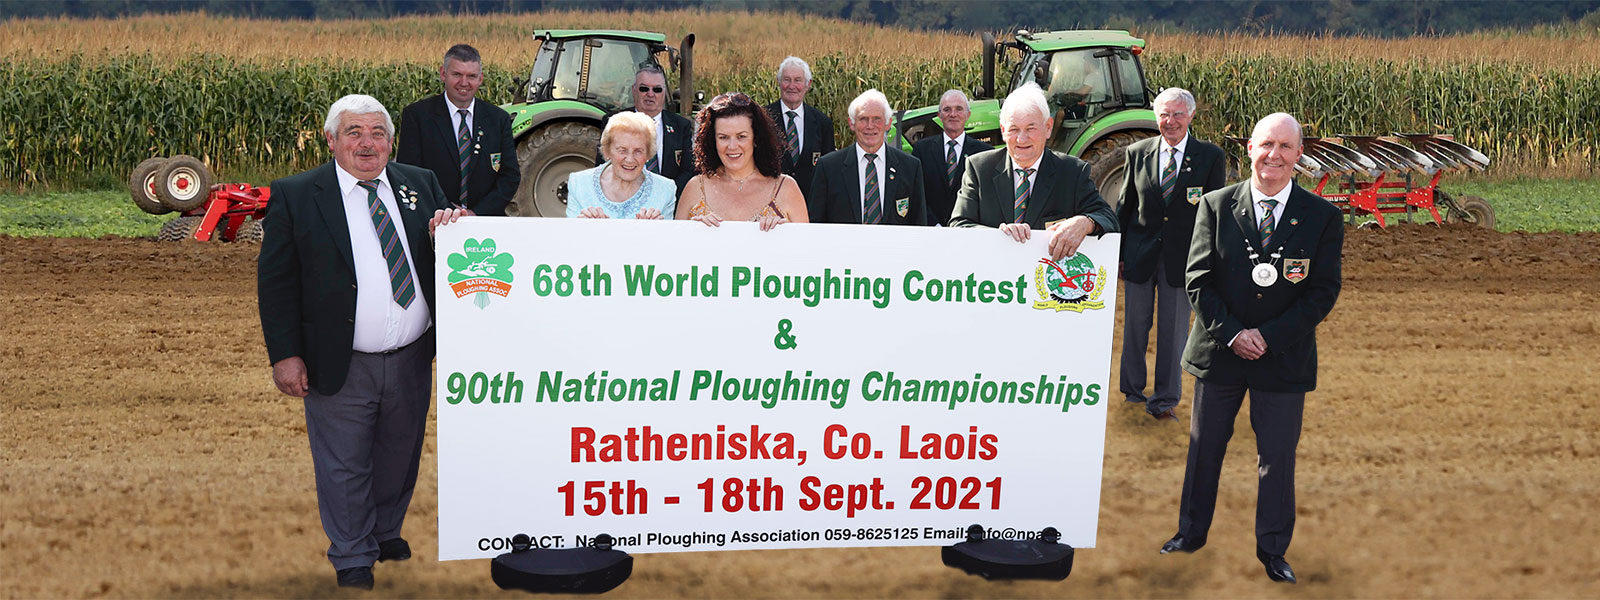 90th National Ploughing Championships Announced